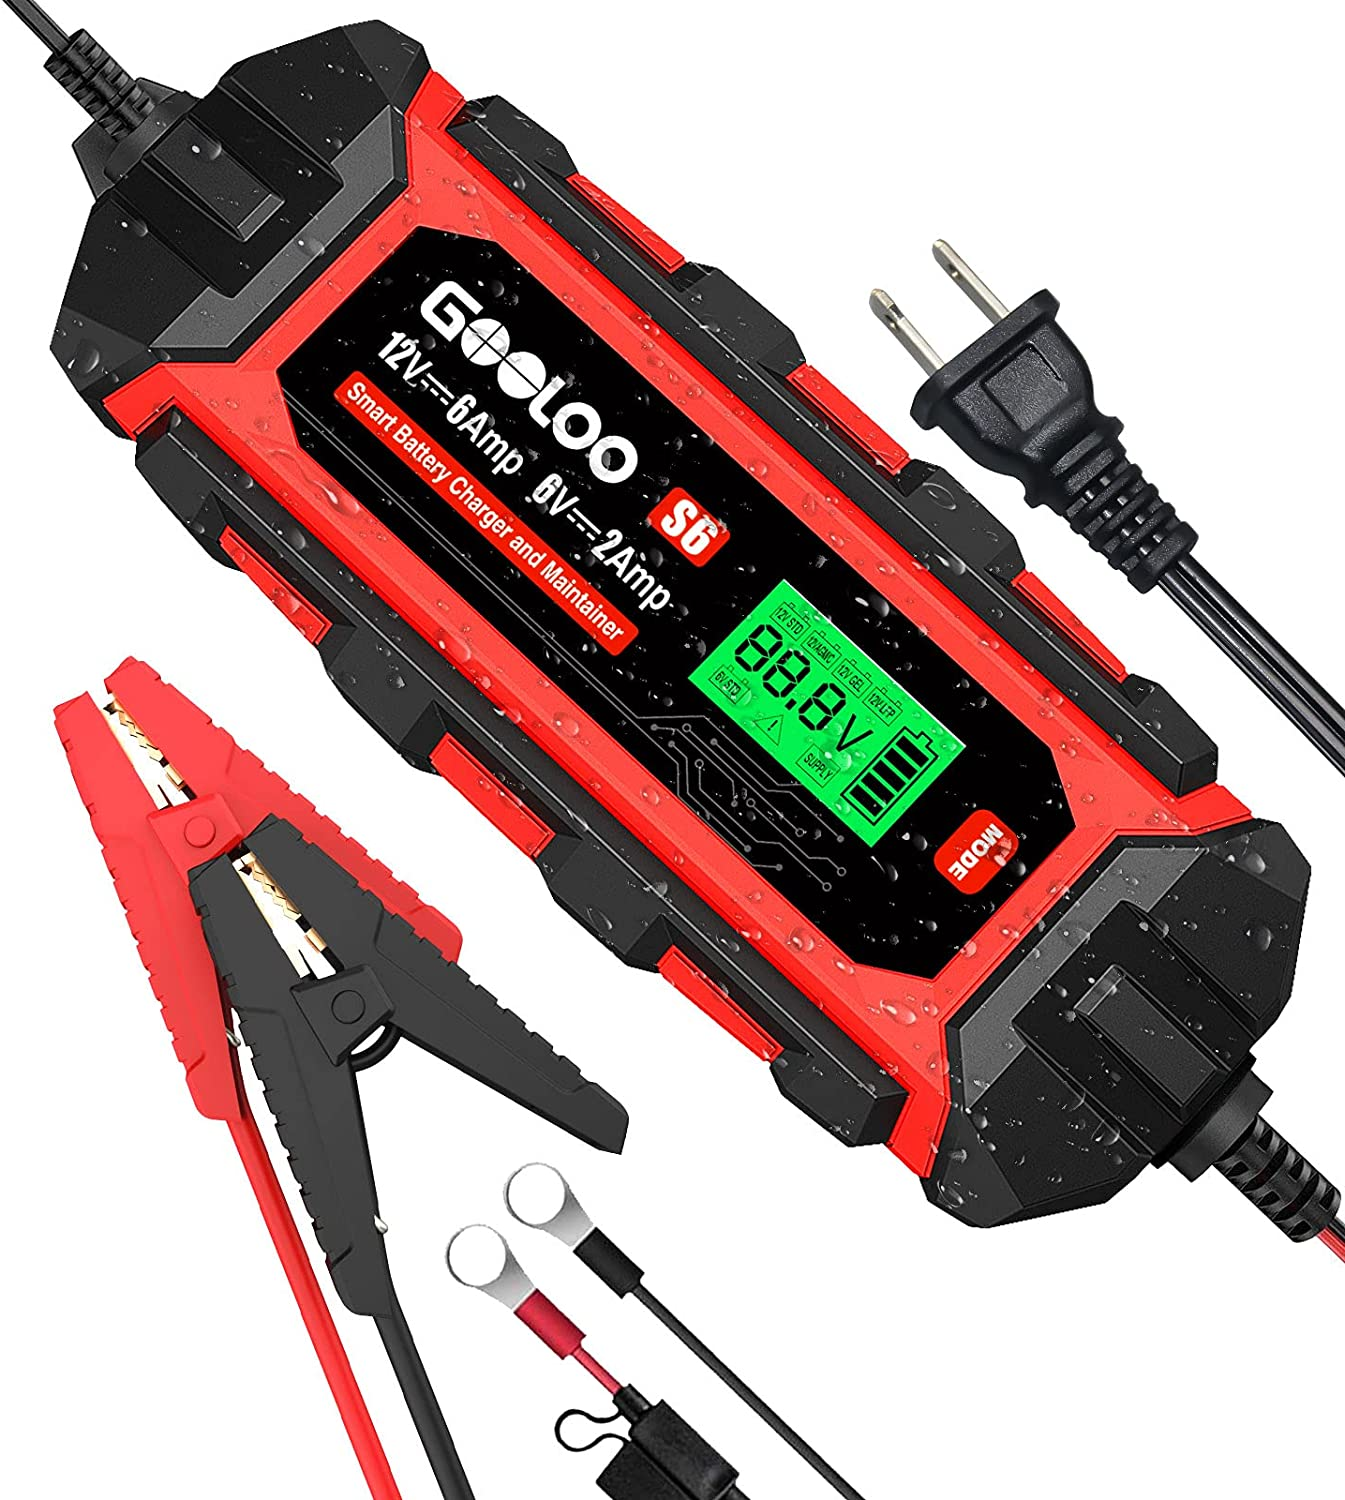 Gooloo S6 12V 6 Amp Car Smart Battery Charger and Maintainer $39.49 Coupon